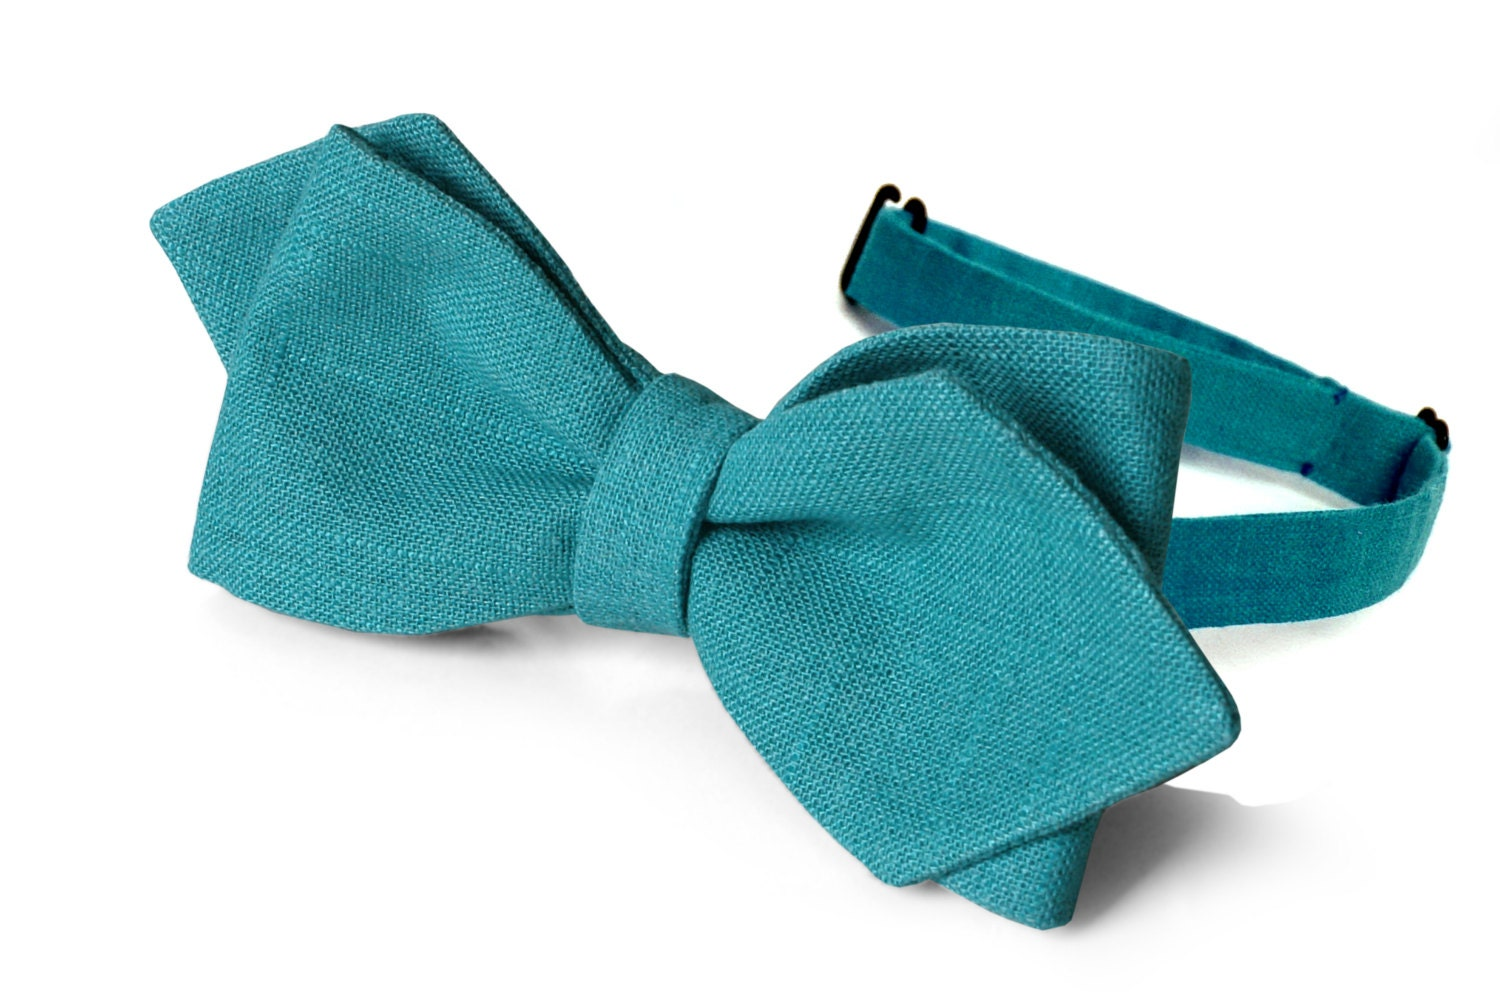 bow tie teal green self tie bow tie teal green classic